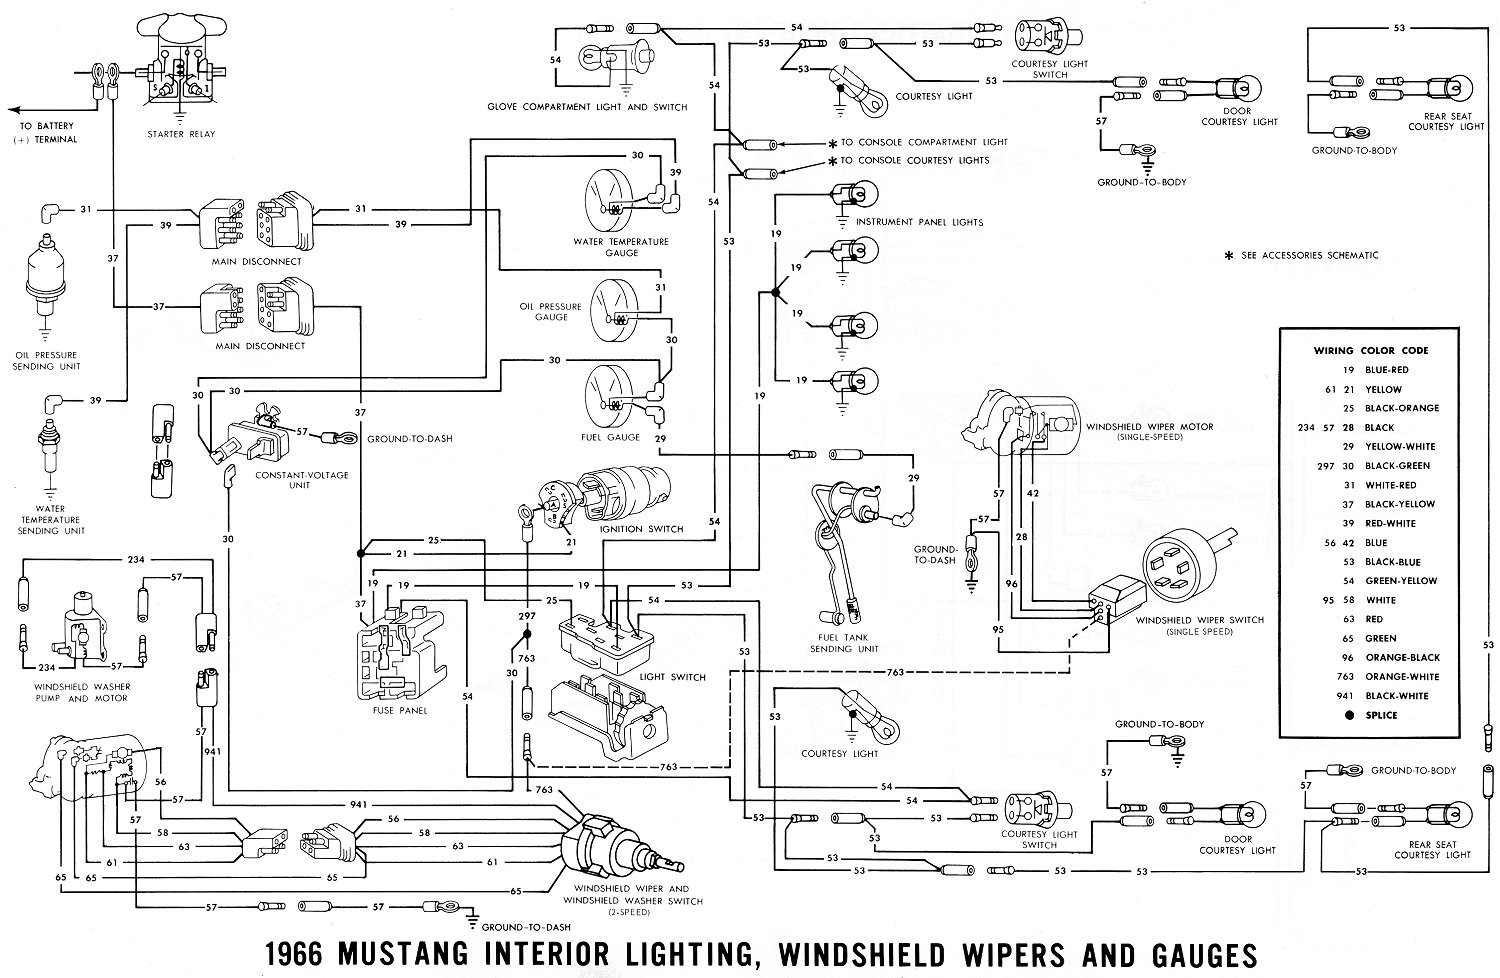 Wiring Harness Diagram Ford Mustang Will Be A Thing 1993 1966 Diagrams Average Joe Restoration Rh Averagejoerestoration Com 2005